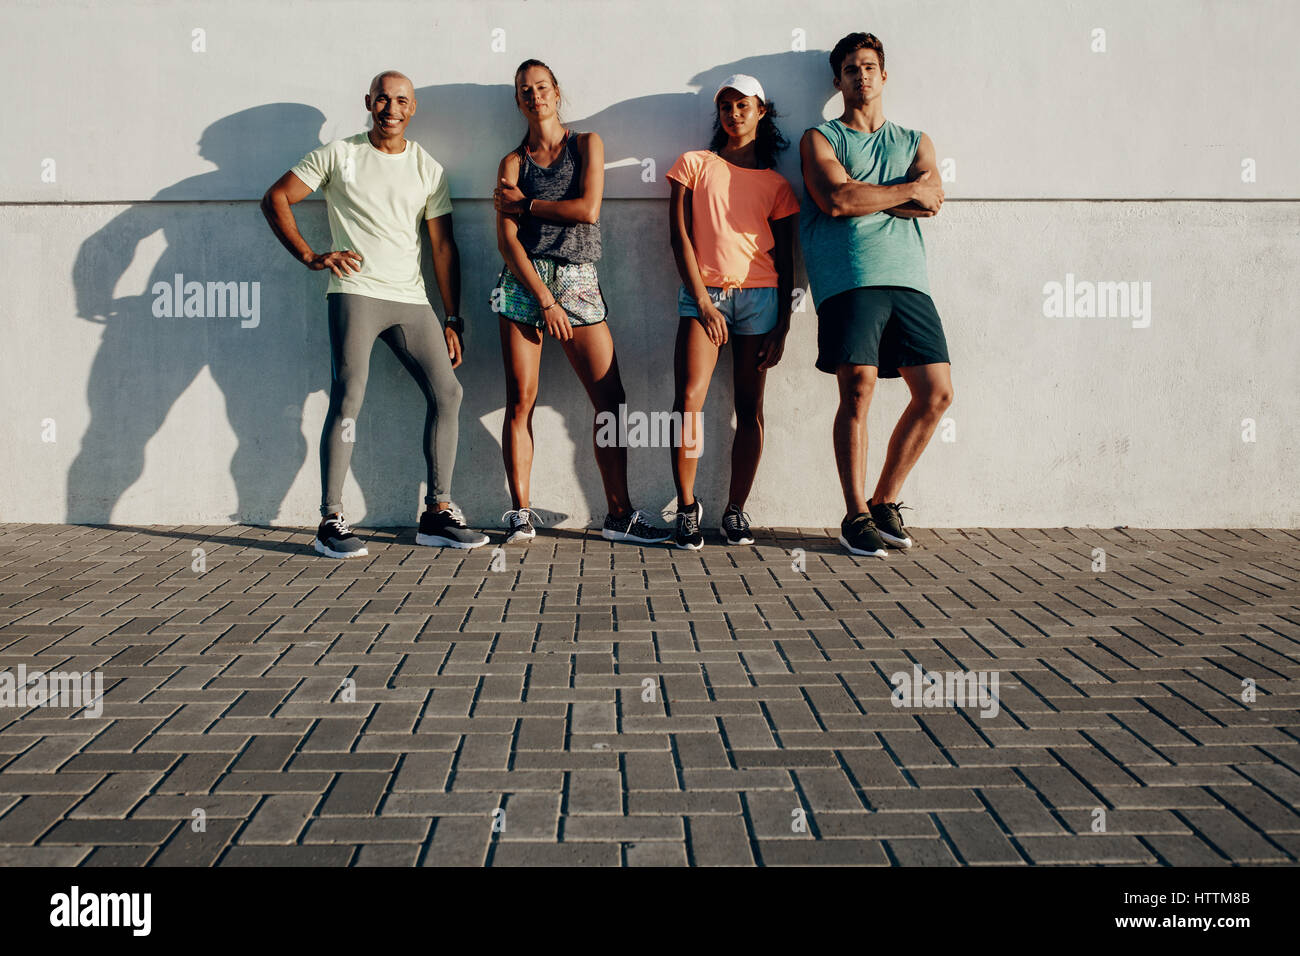 Full length shot of young friends posing together. Group of fitness people standing by a wall outdoors. - Stock Image